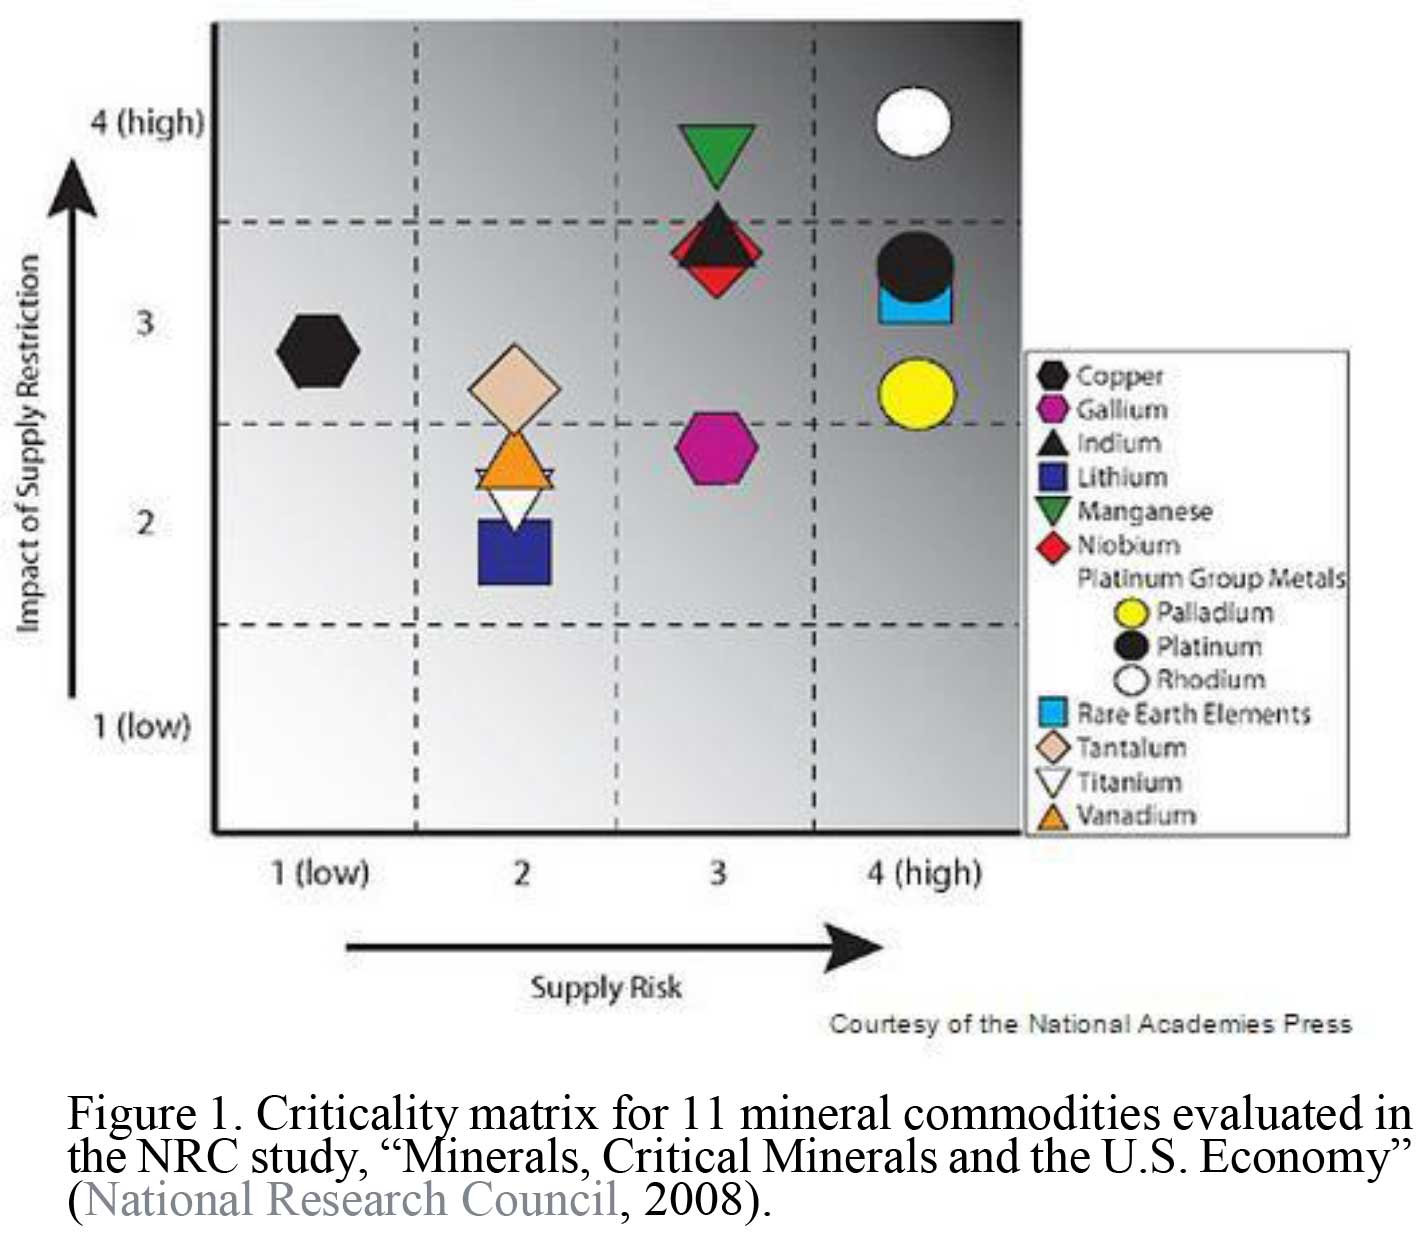 Figure 1. Criticality Matrix for 11 mineral commodities evaluated in the NRC study, Minerals Critical Minerals, and the US Economy